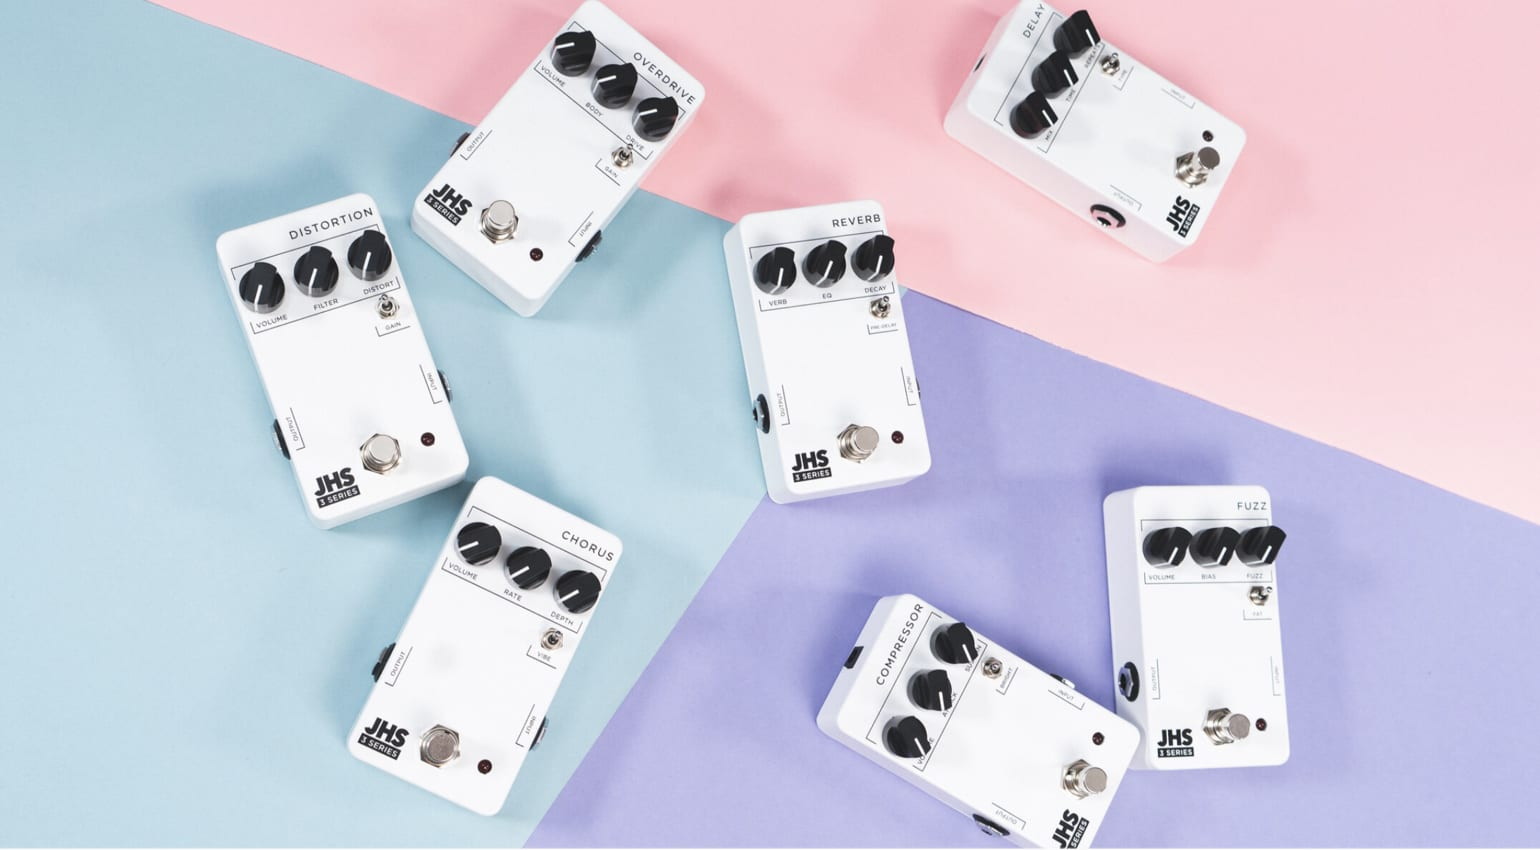 JHS Pedals Series 3 with simple control layout for each effect